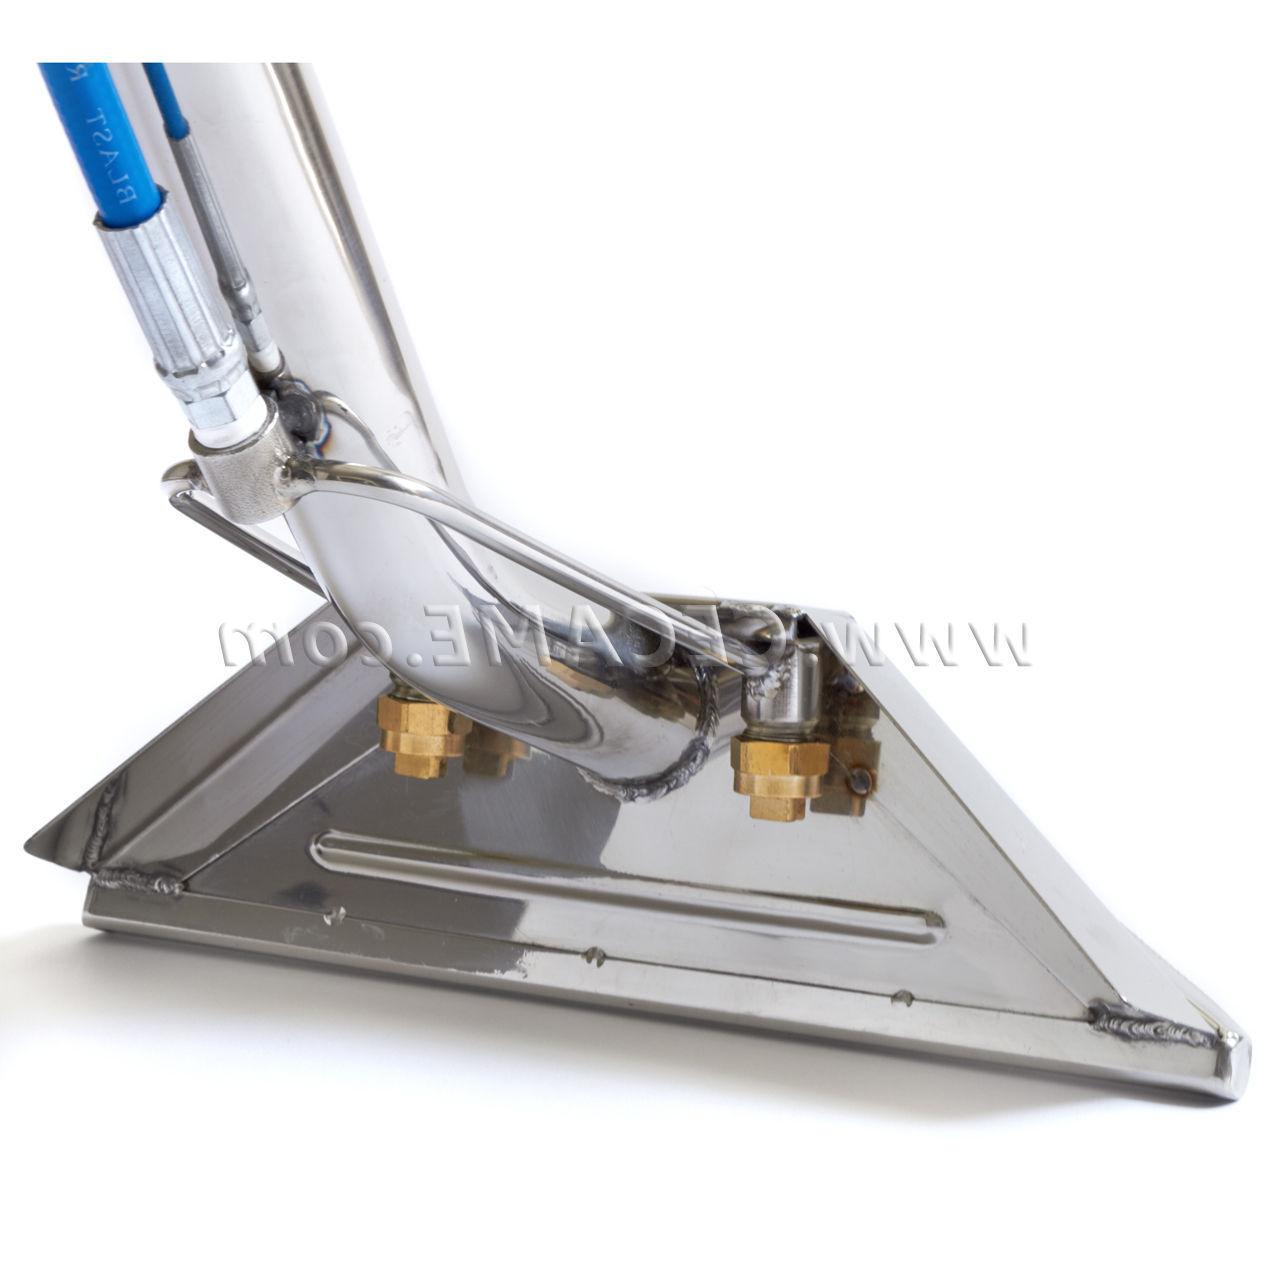 carpet cleaning wand 2 jet